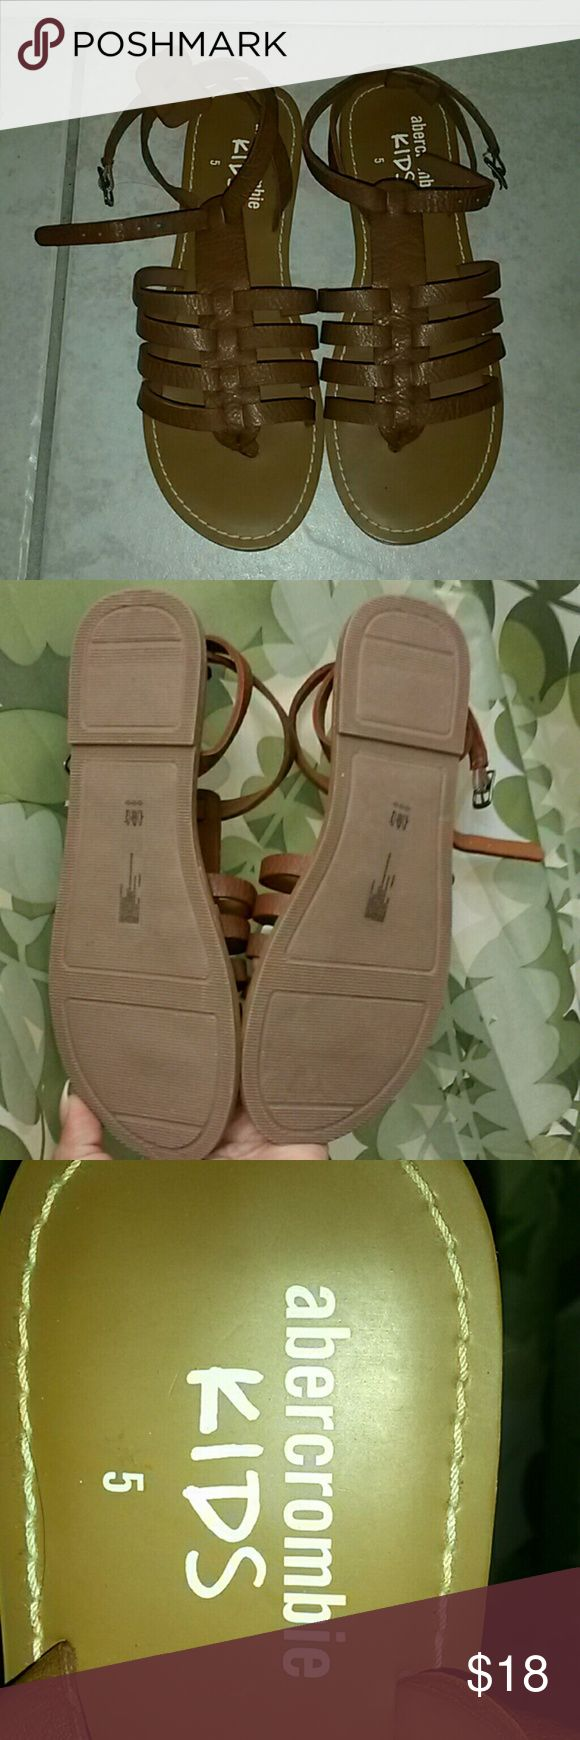 Abercrombie girl s sandal Brown Abercrombie girls sandals size 5 excellent condition Abercombie Kids Shoes Sandals & Flip Flops